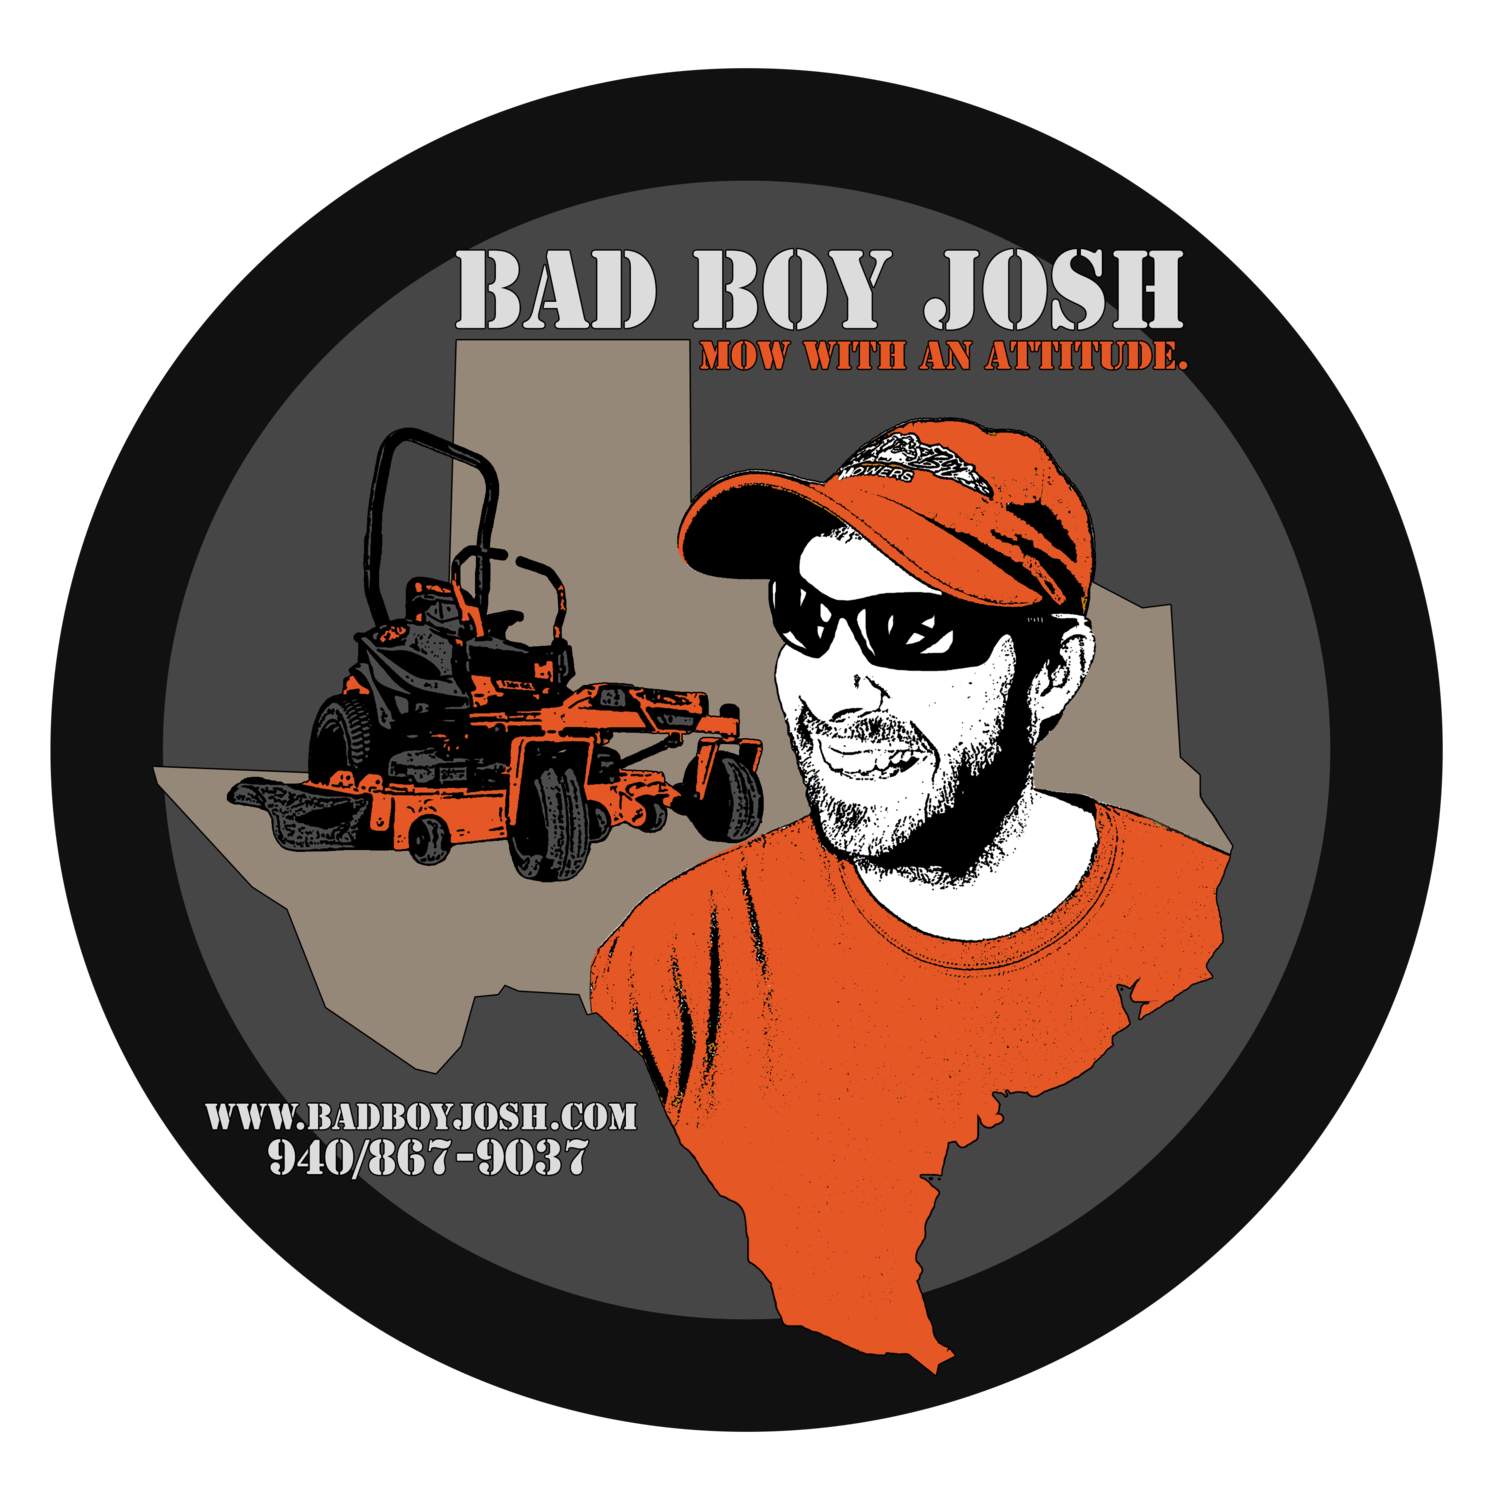 Bad Boy Josh LLC